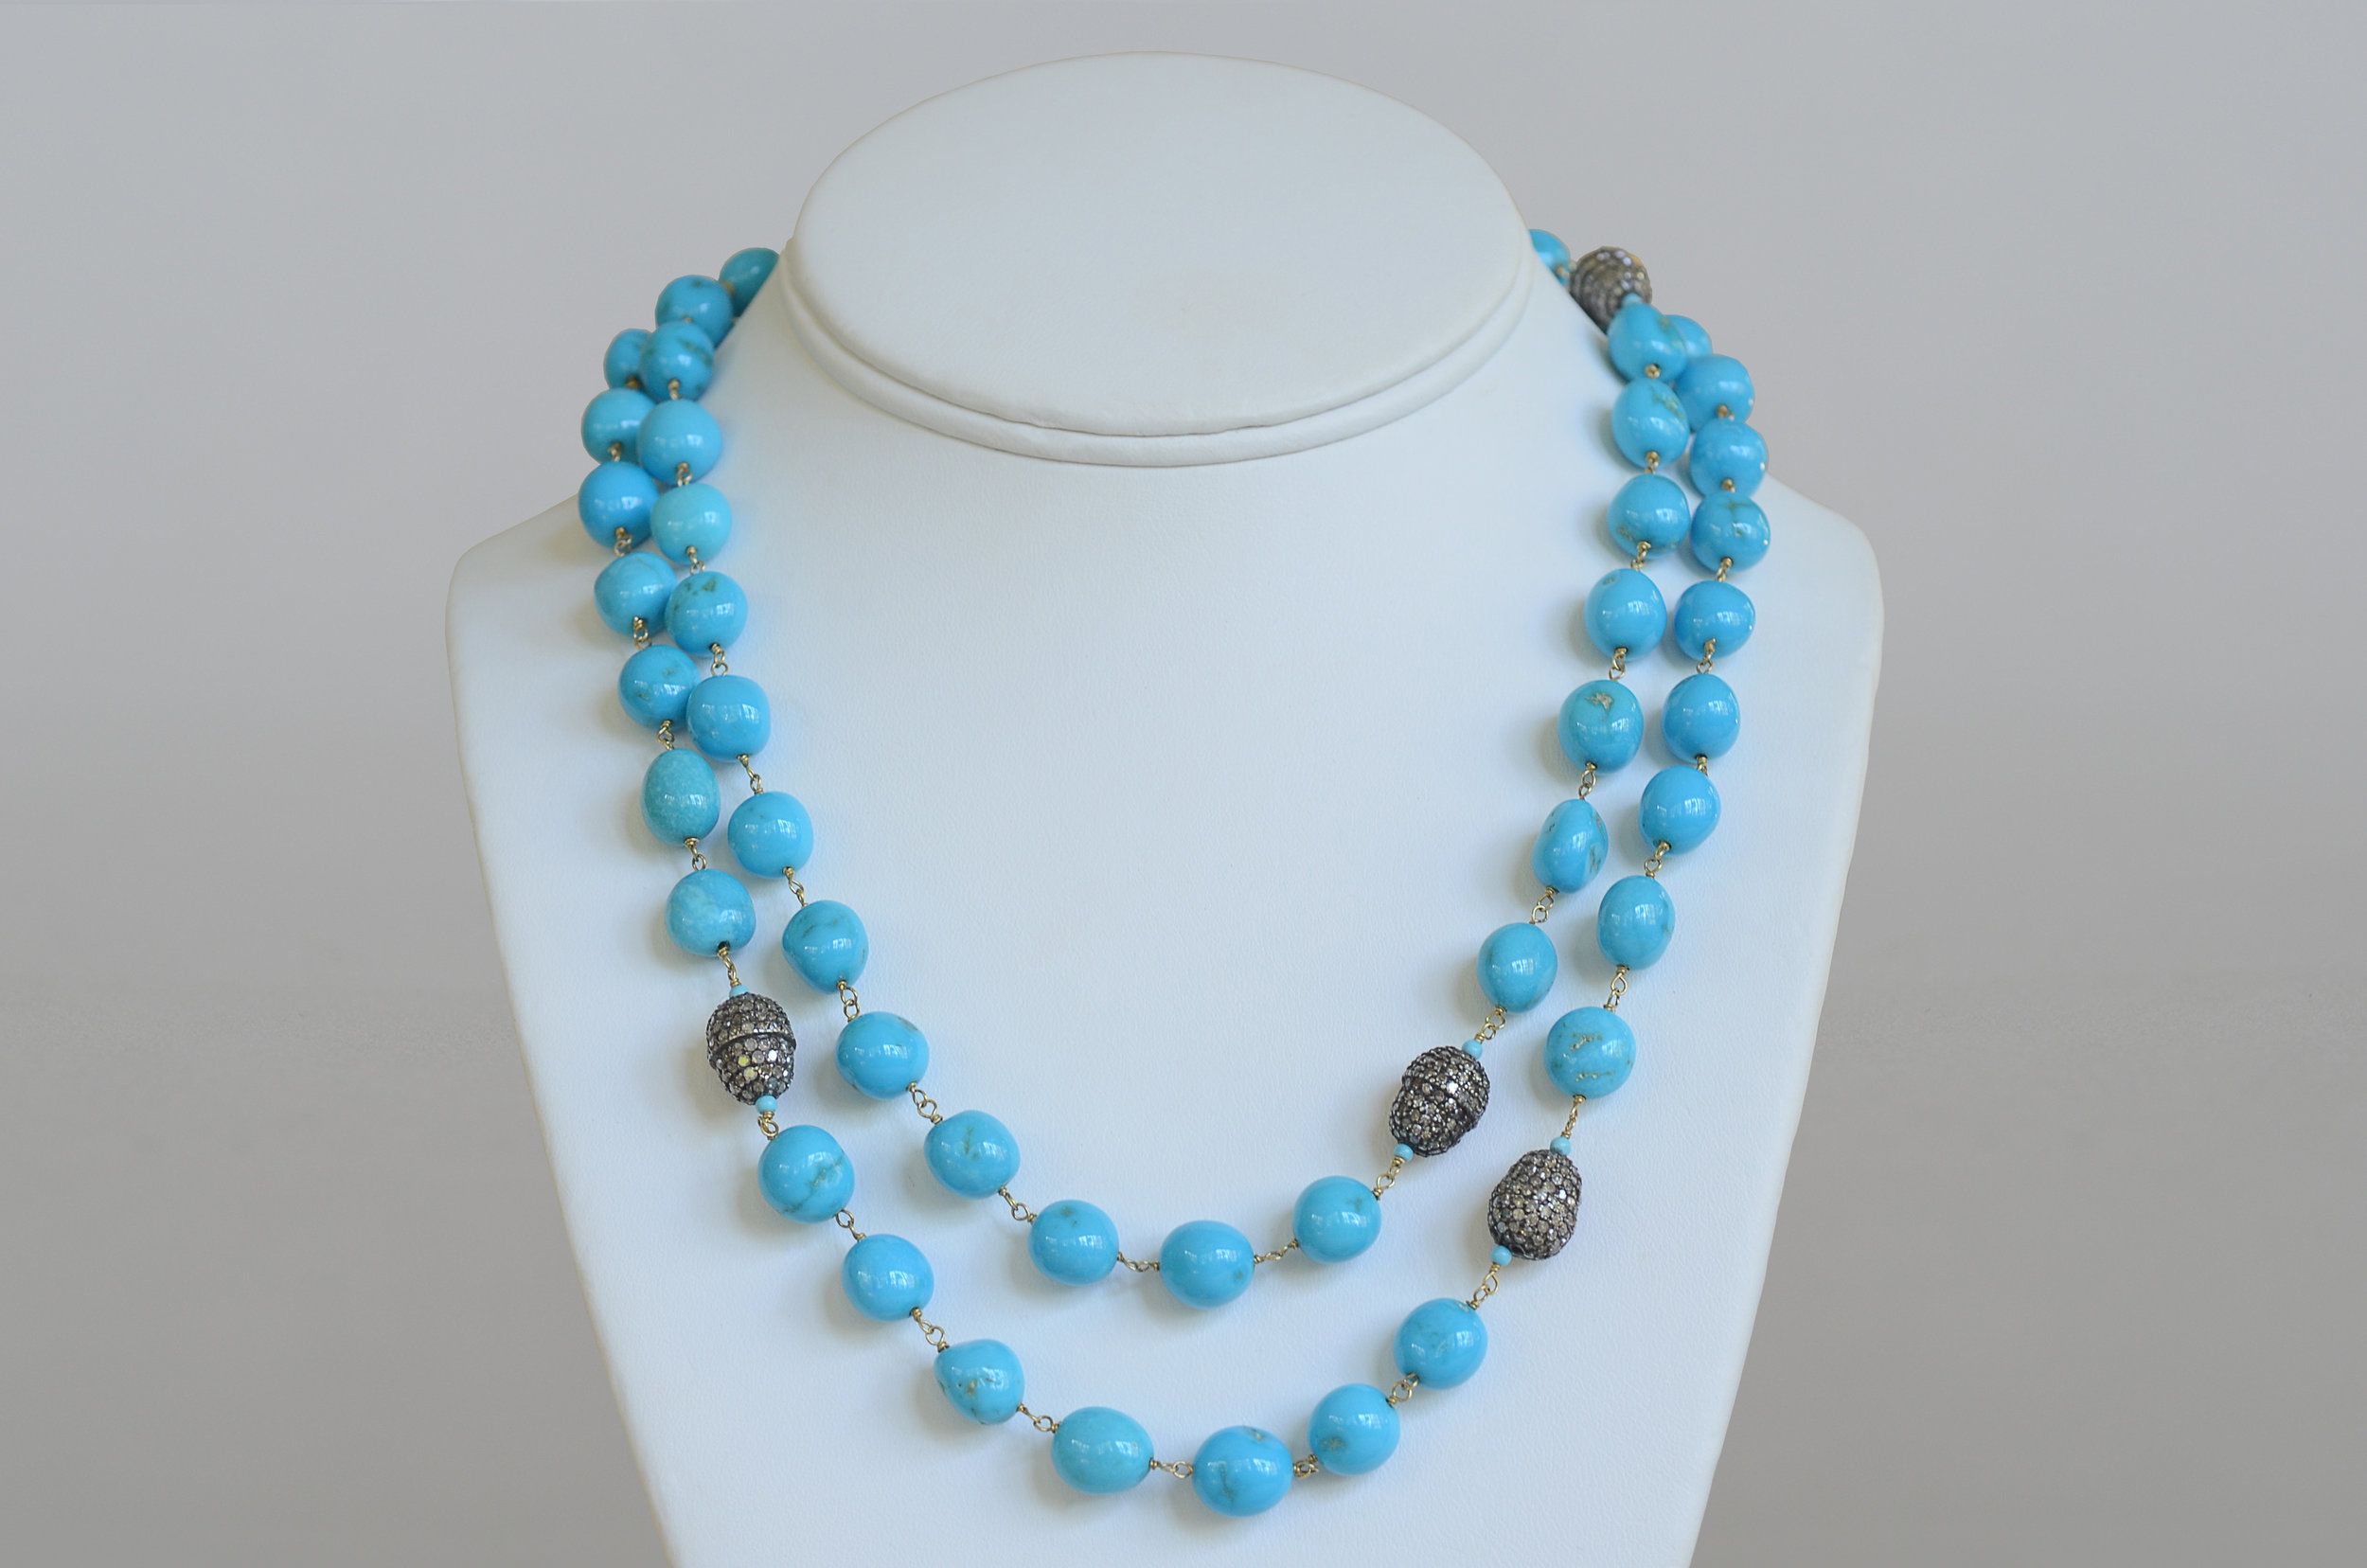 Turquoise Bead Necklace.jpg